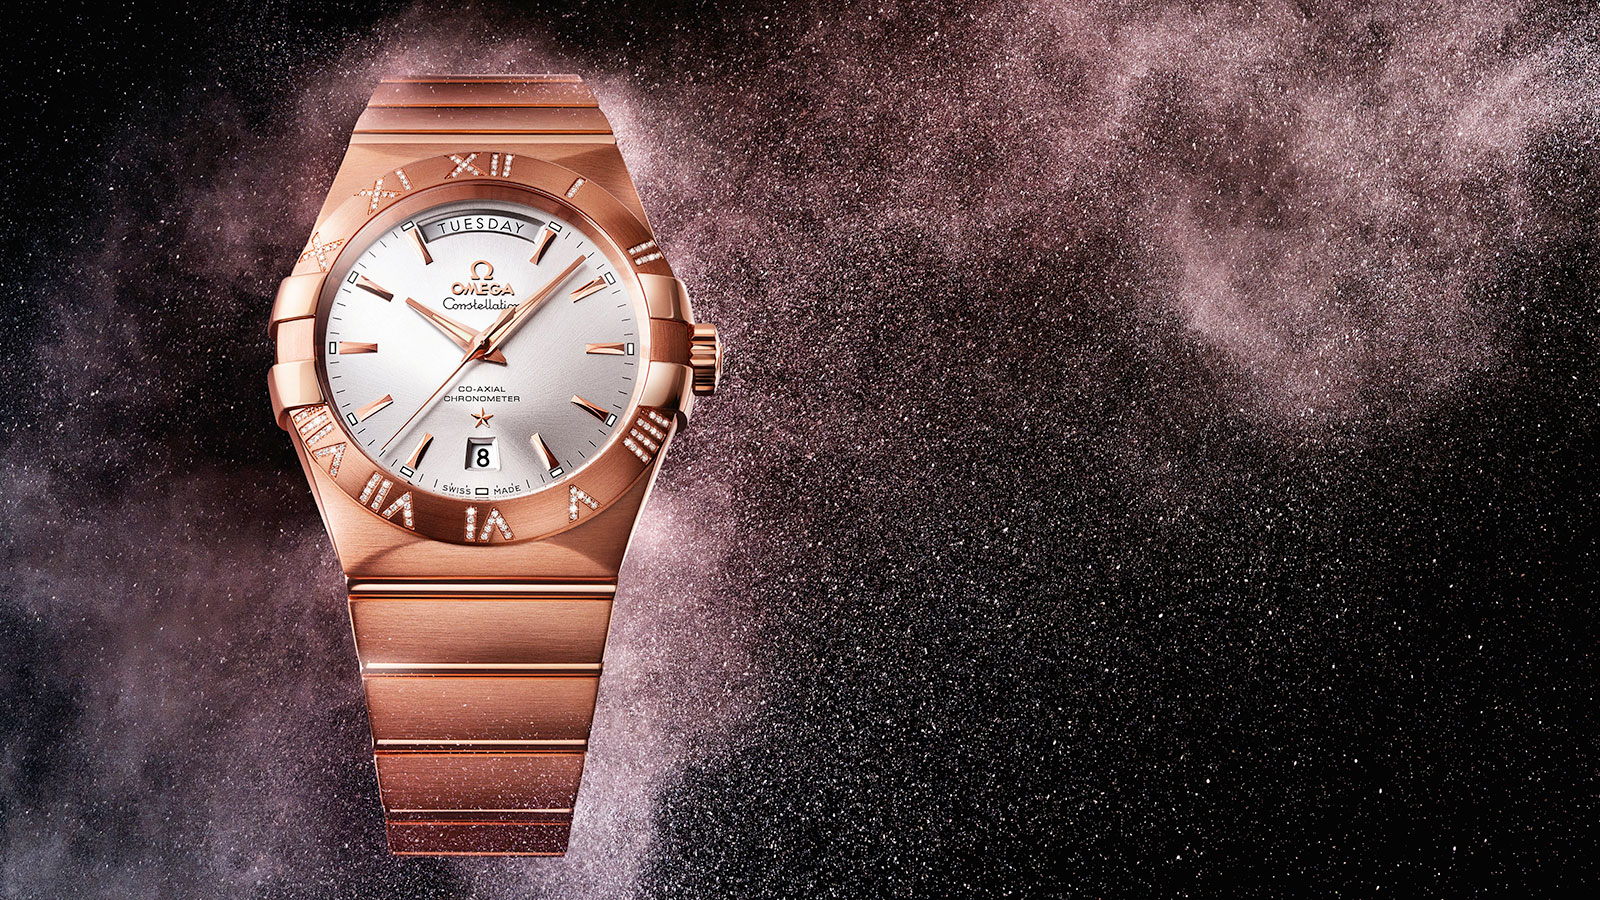 Constellation コンステレーション Constellation Omega Co‑Axial Day‑Date 38mm ウォッチ - 123.55.38.22.02.001